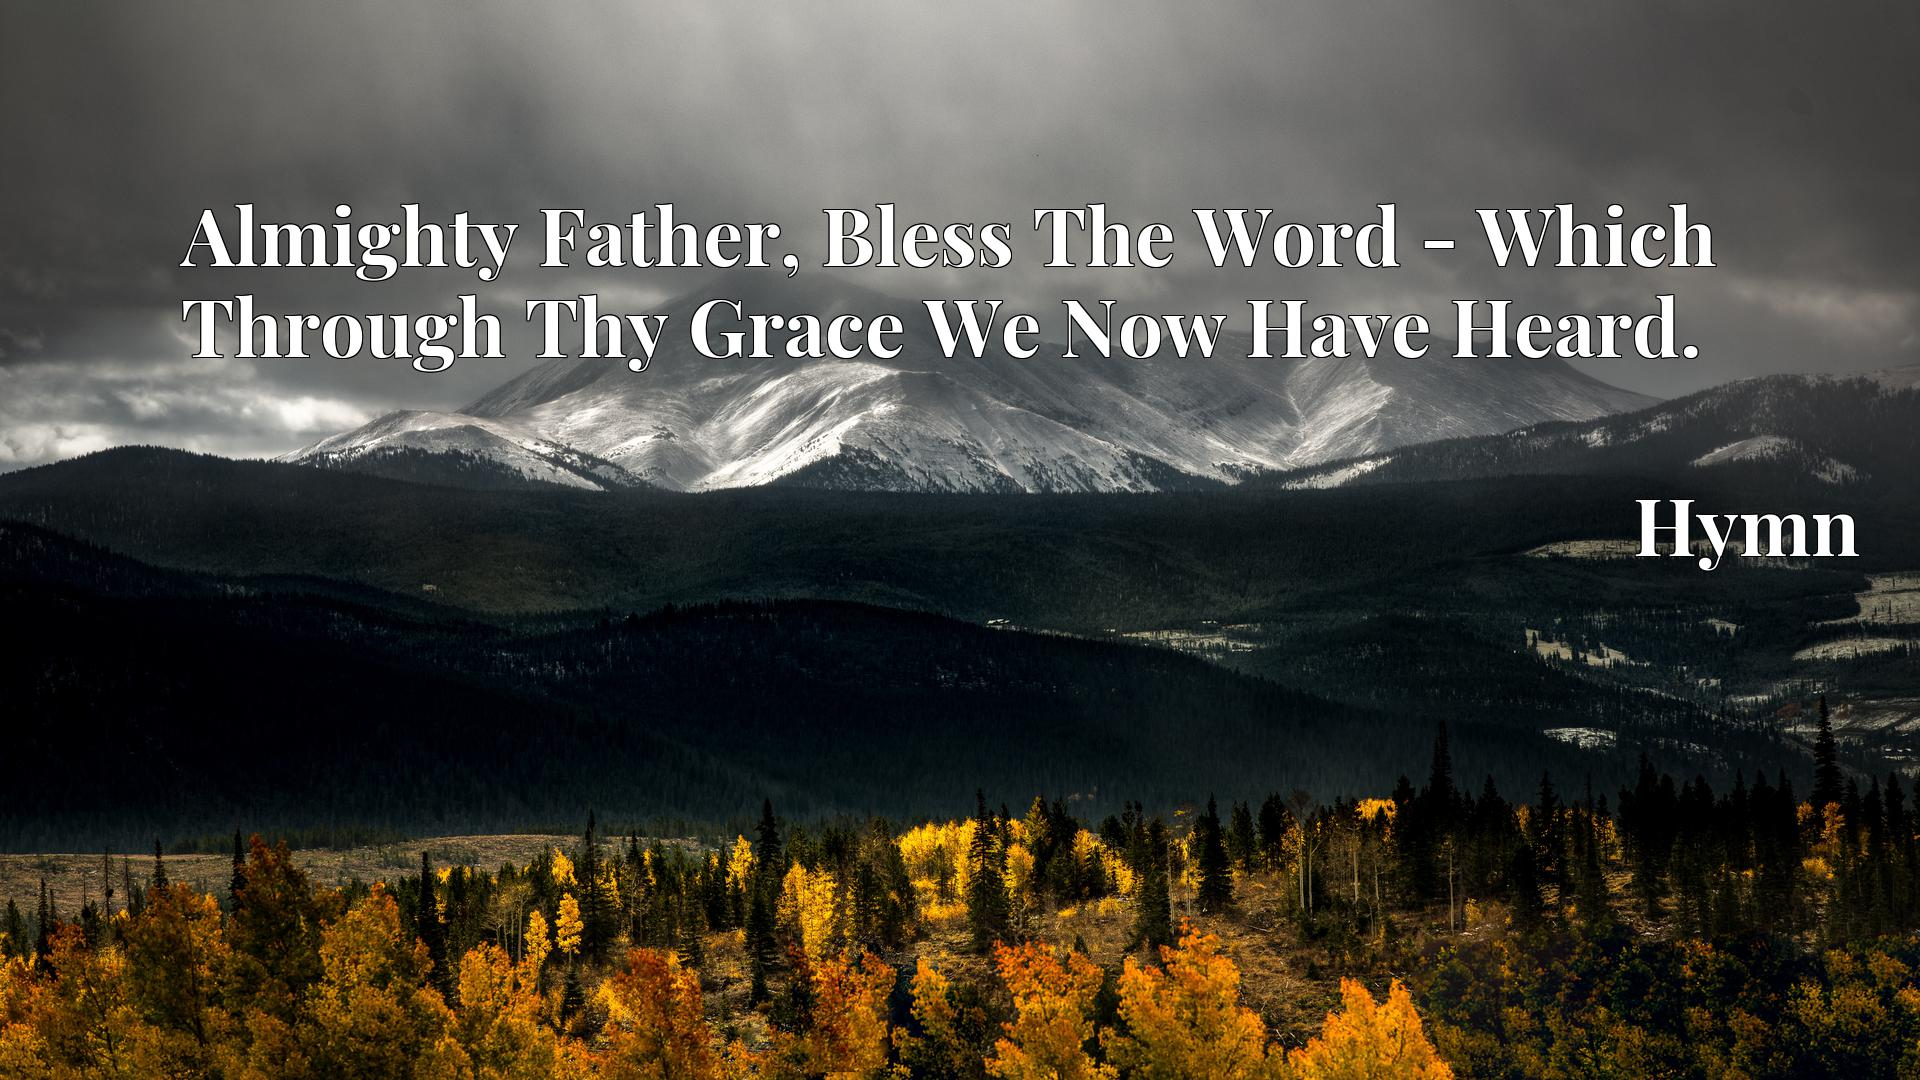 Almighty Father, Bless The Word - Which Through Thy Grace We Now Have Heard. - Hymn